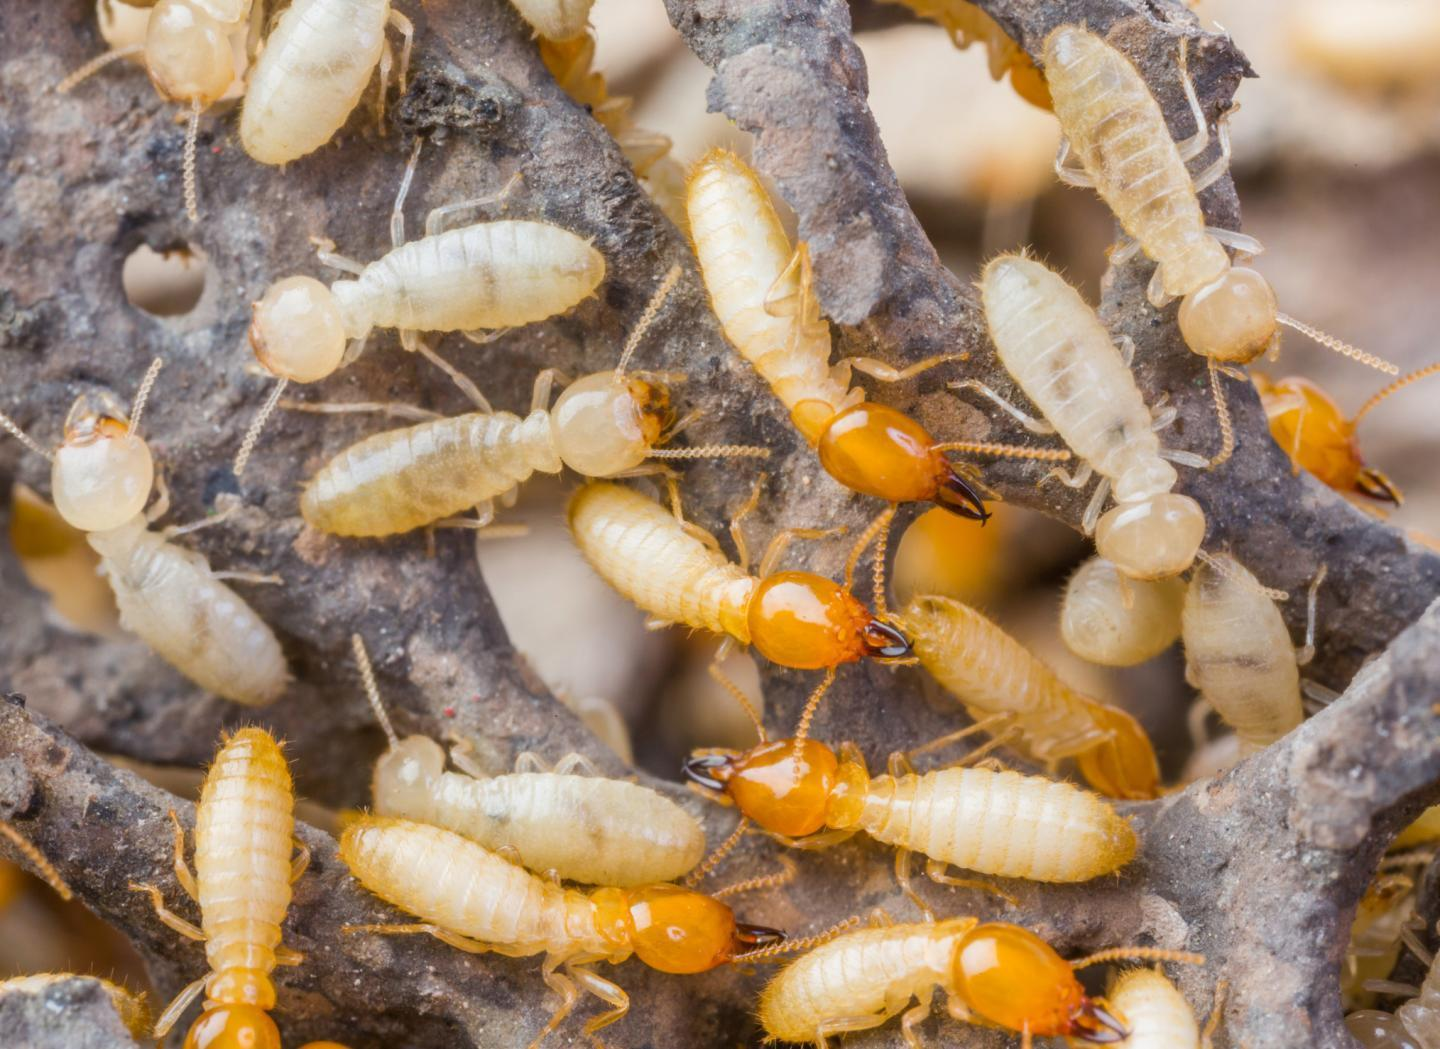 Female termites in Japan are reproducing without males https://t.co/8Zwl0AqQ62 https://t.co/VnBAxdXdV4